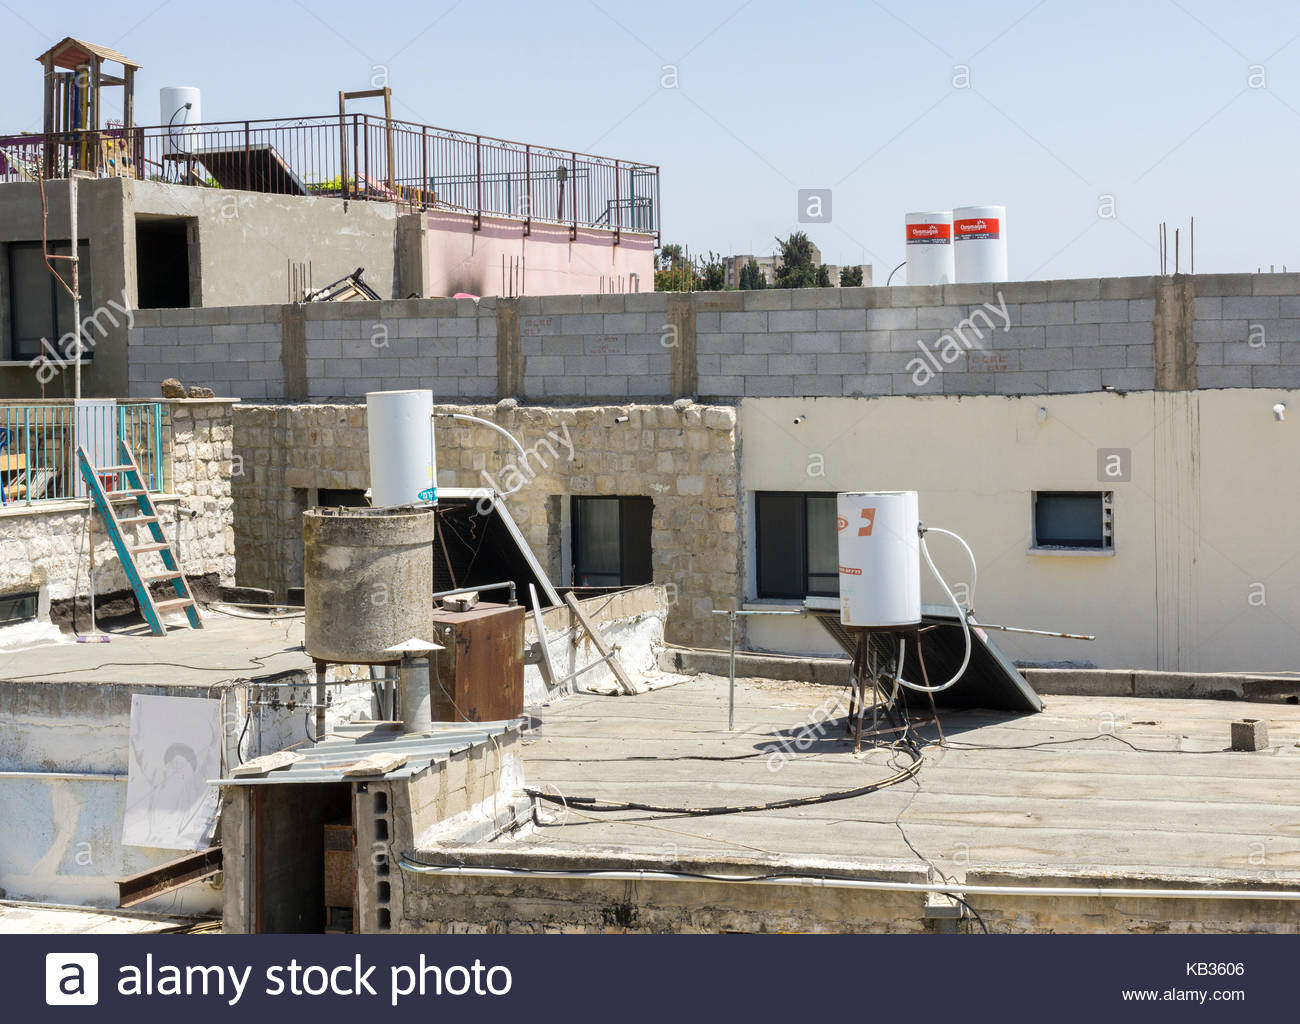 Standard Israeli passive-solar water heaters, seen on rooftops in the city of Safed, Northern District, Israel - Stock Image